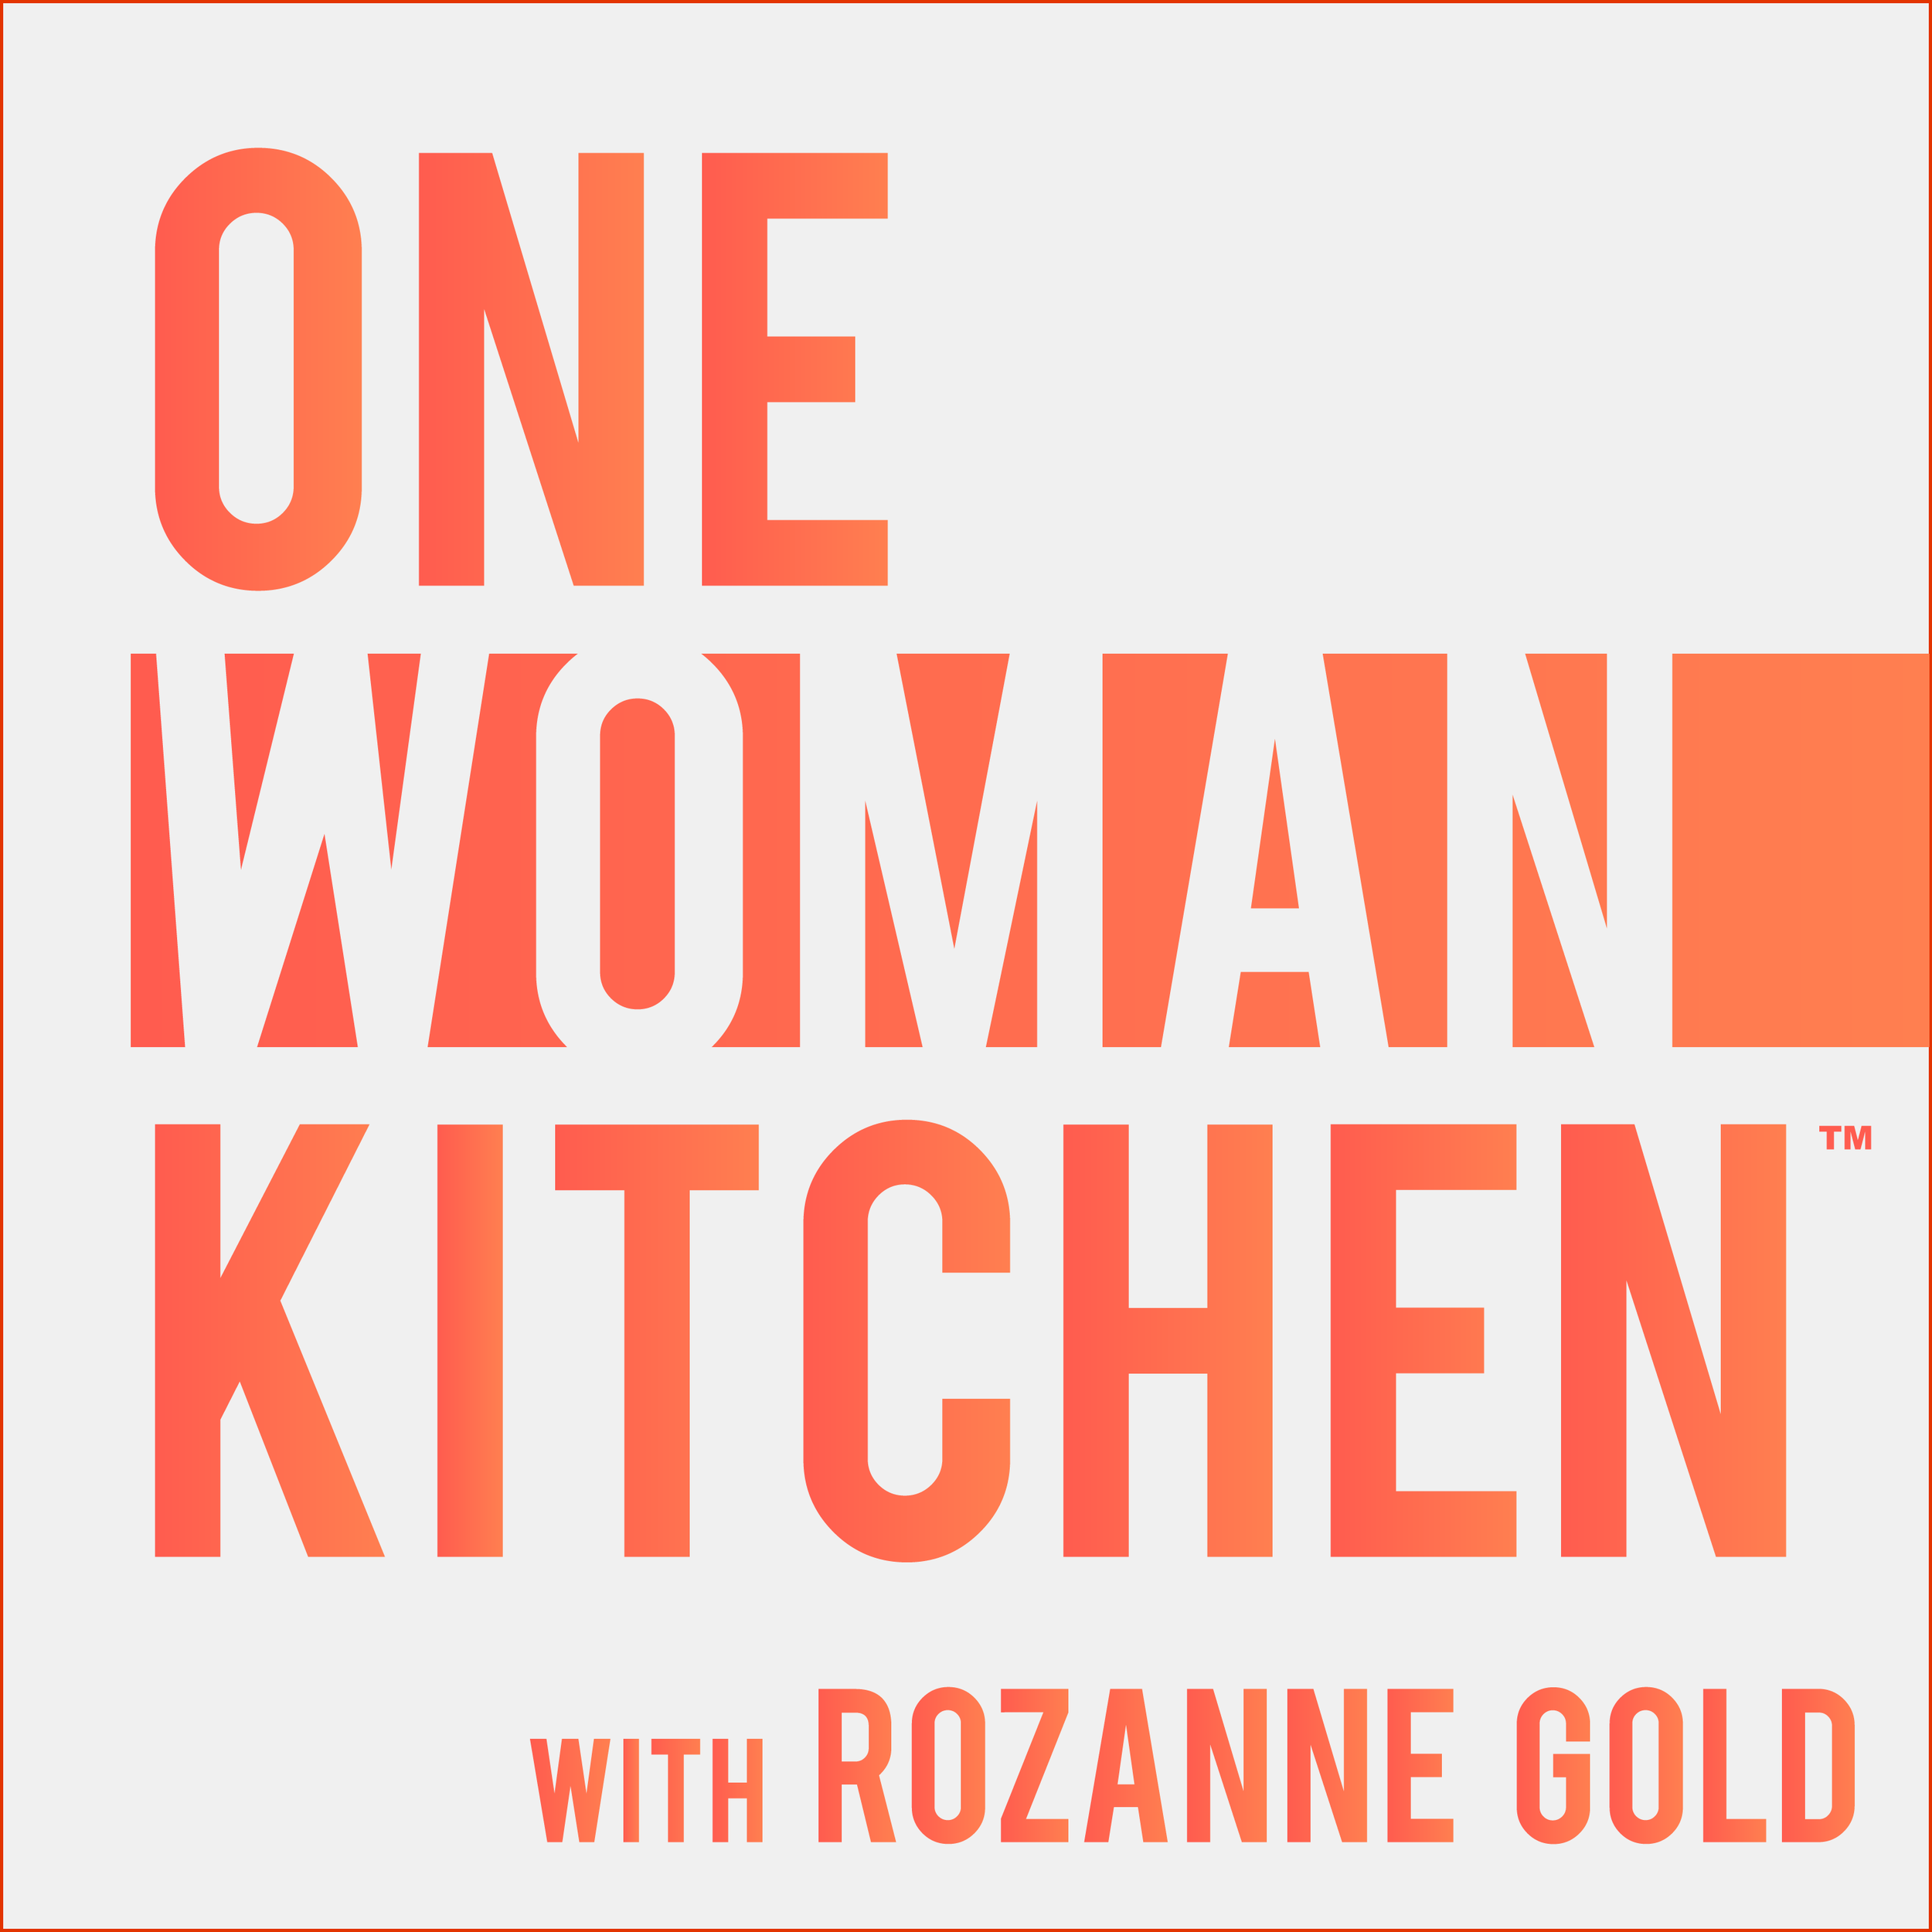 One Woman Kitchen - In the vast culinary landscape we share, we're all carving out a place for ourselves. Each of us in our own special way is a One Woman Kitchen. Come into the kitchen of Rozanne Gold, one of the most prominent women-in-food, to discover and learn from the rising female stars illuminating the culinary cosmos.